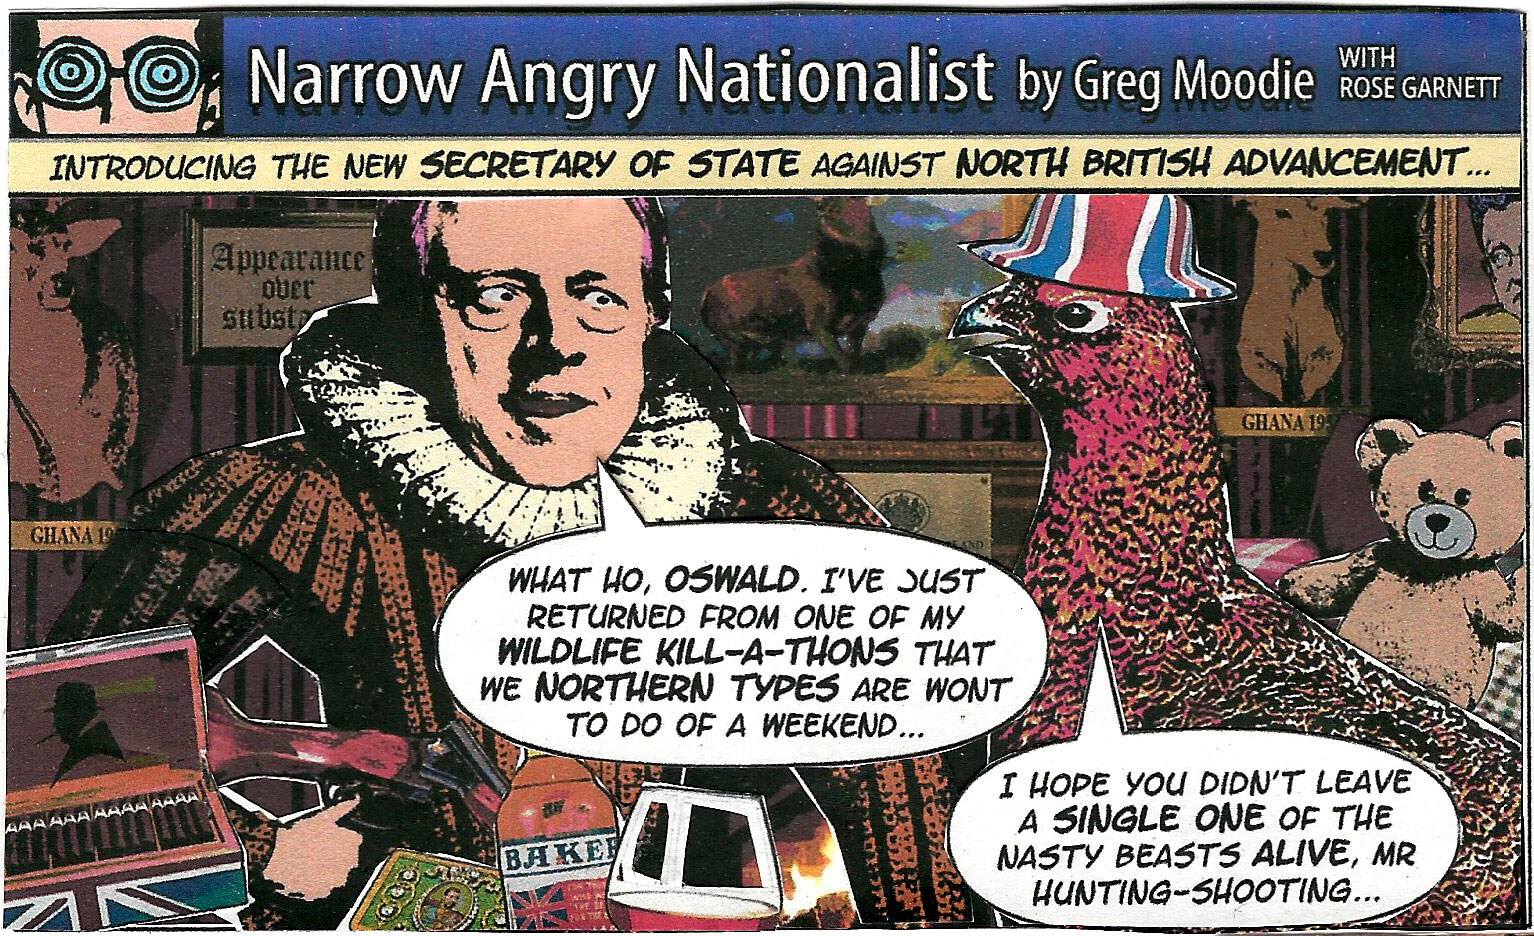 Narrow Angry Nationalist